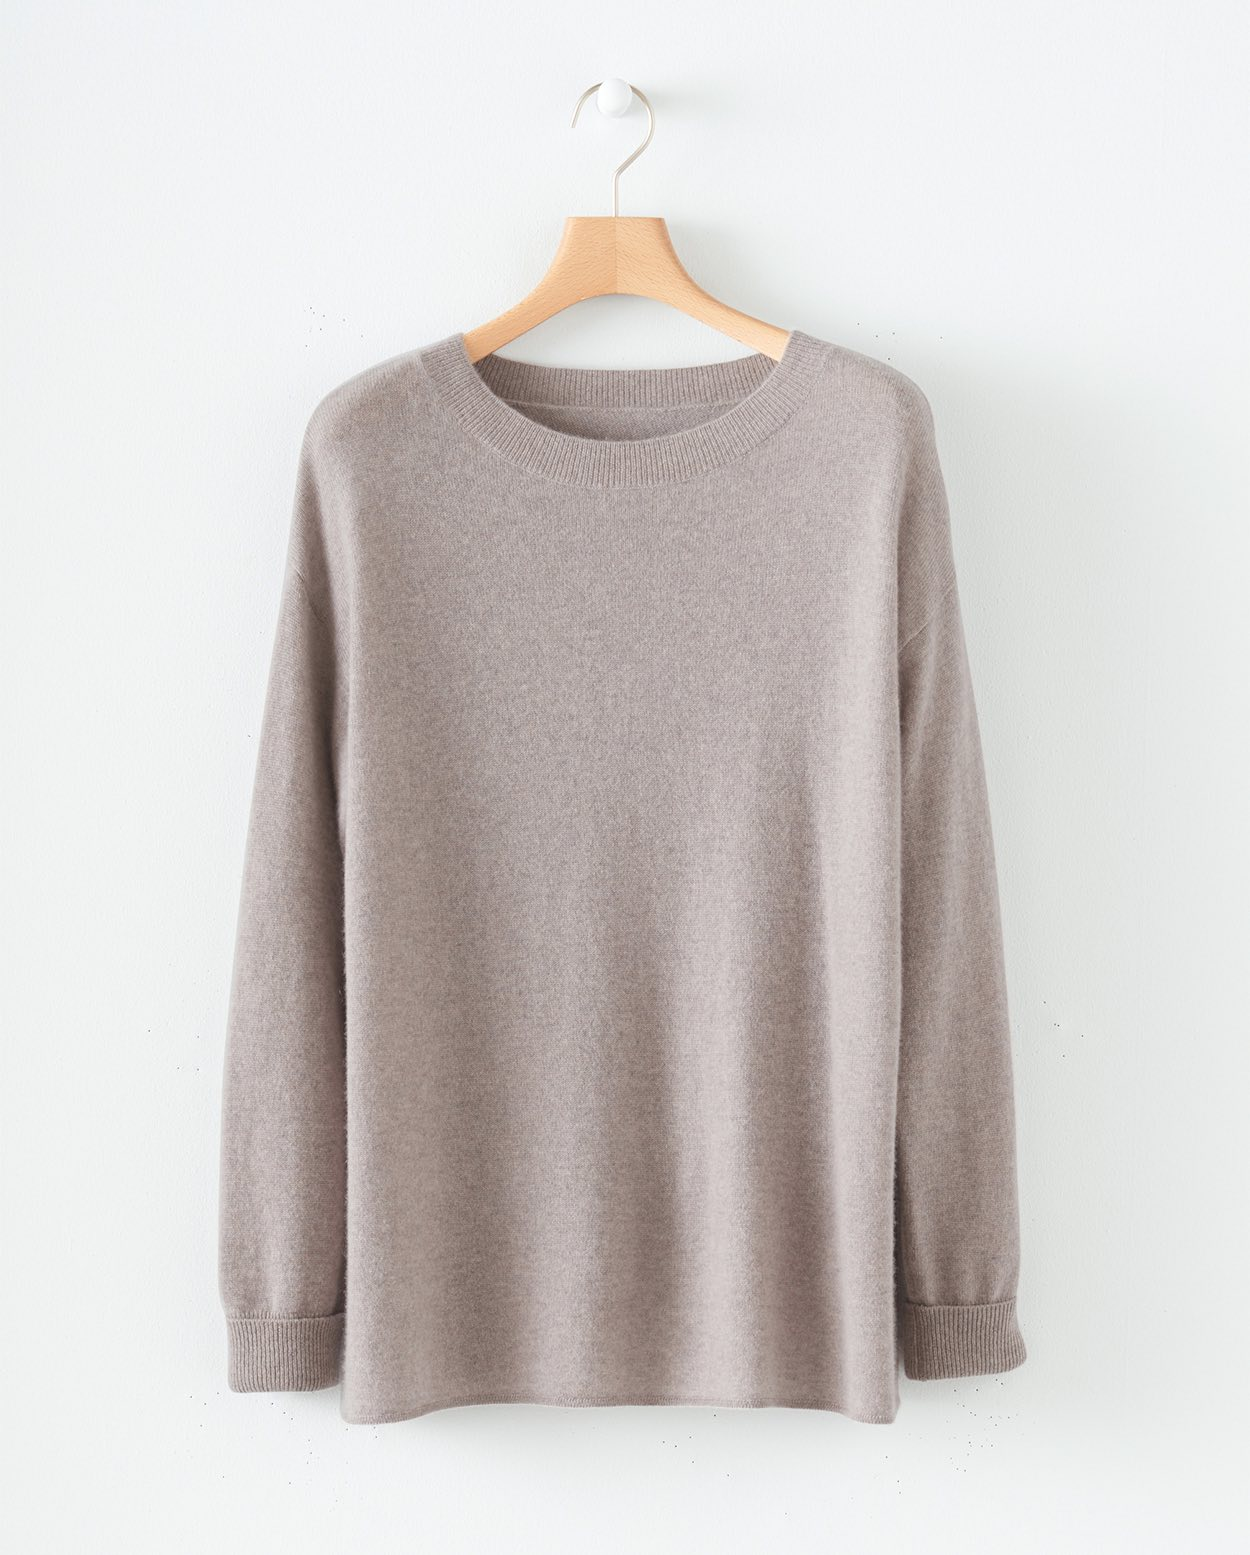 Poetry - Cashmere sweater with cross-back detail